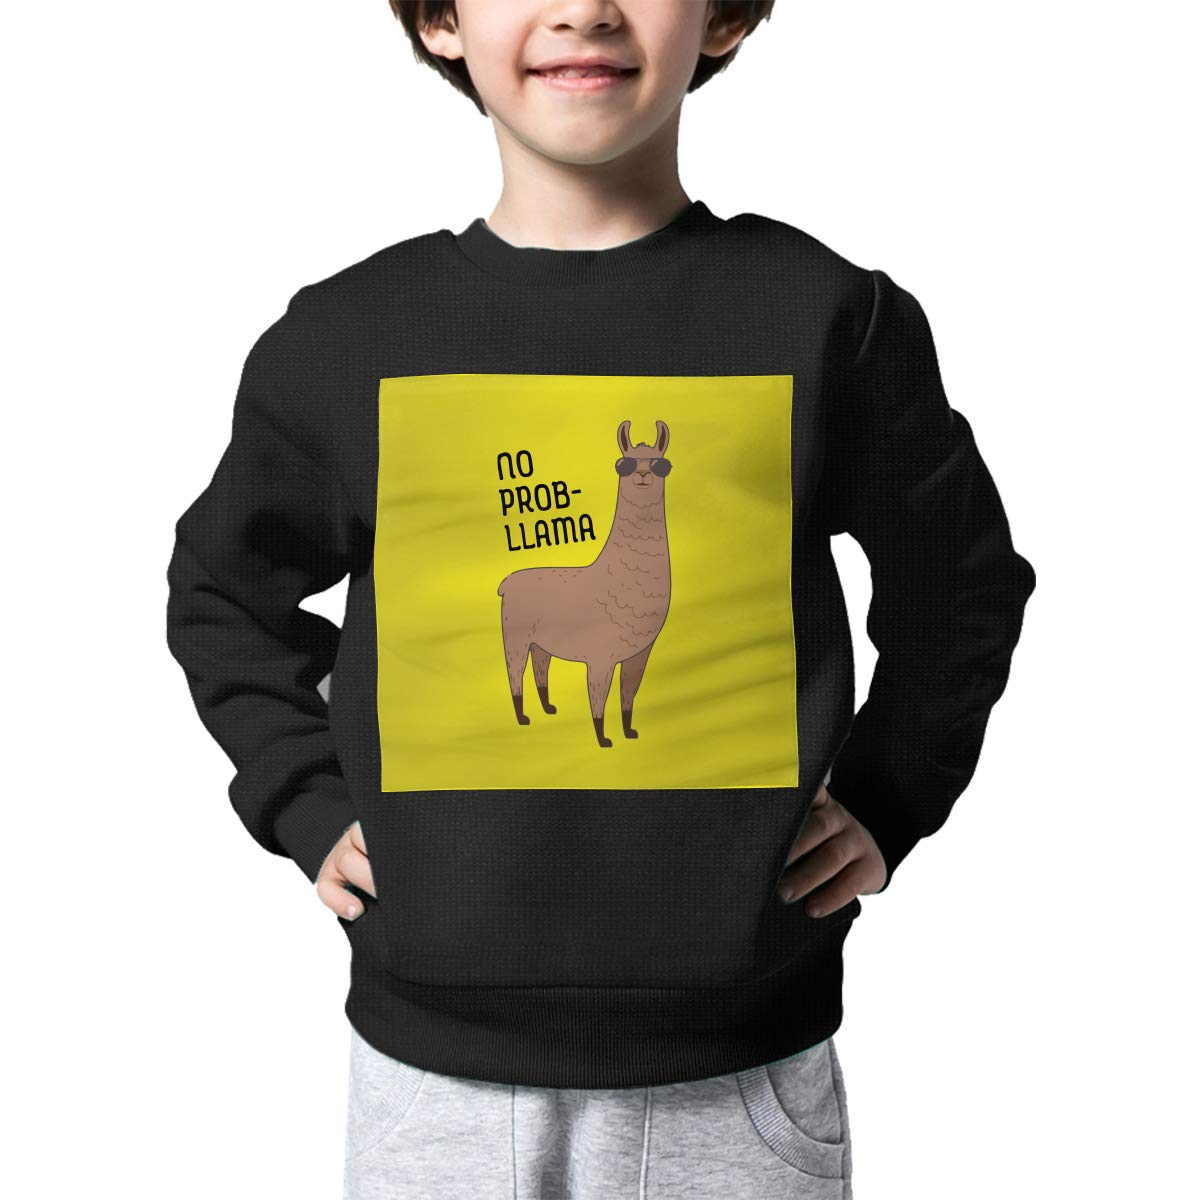 AW-KOCP Childrens Cool Llama with Sunglasses Sweater Kids Pullover Sweaters